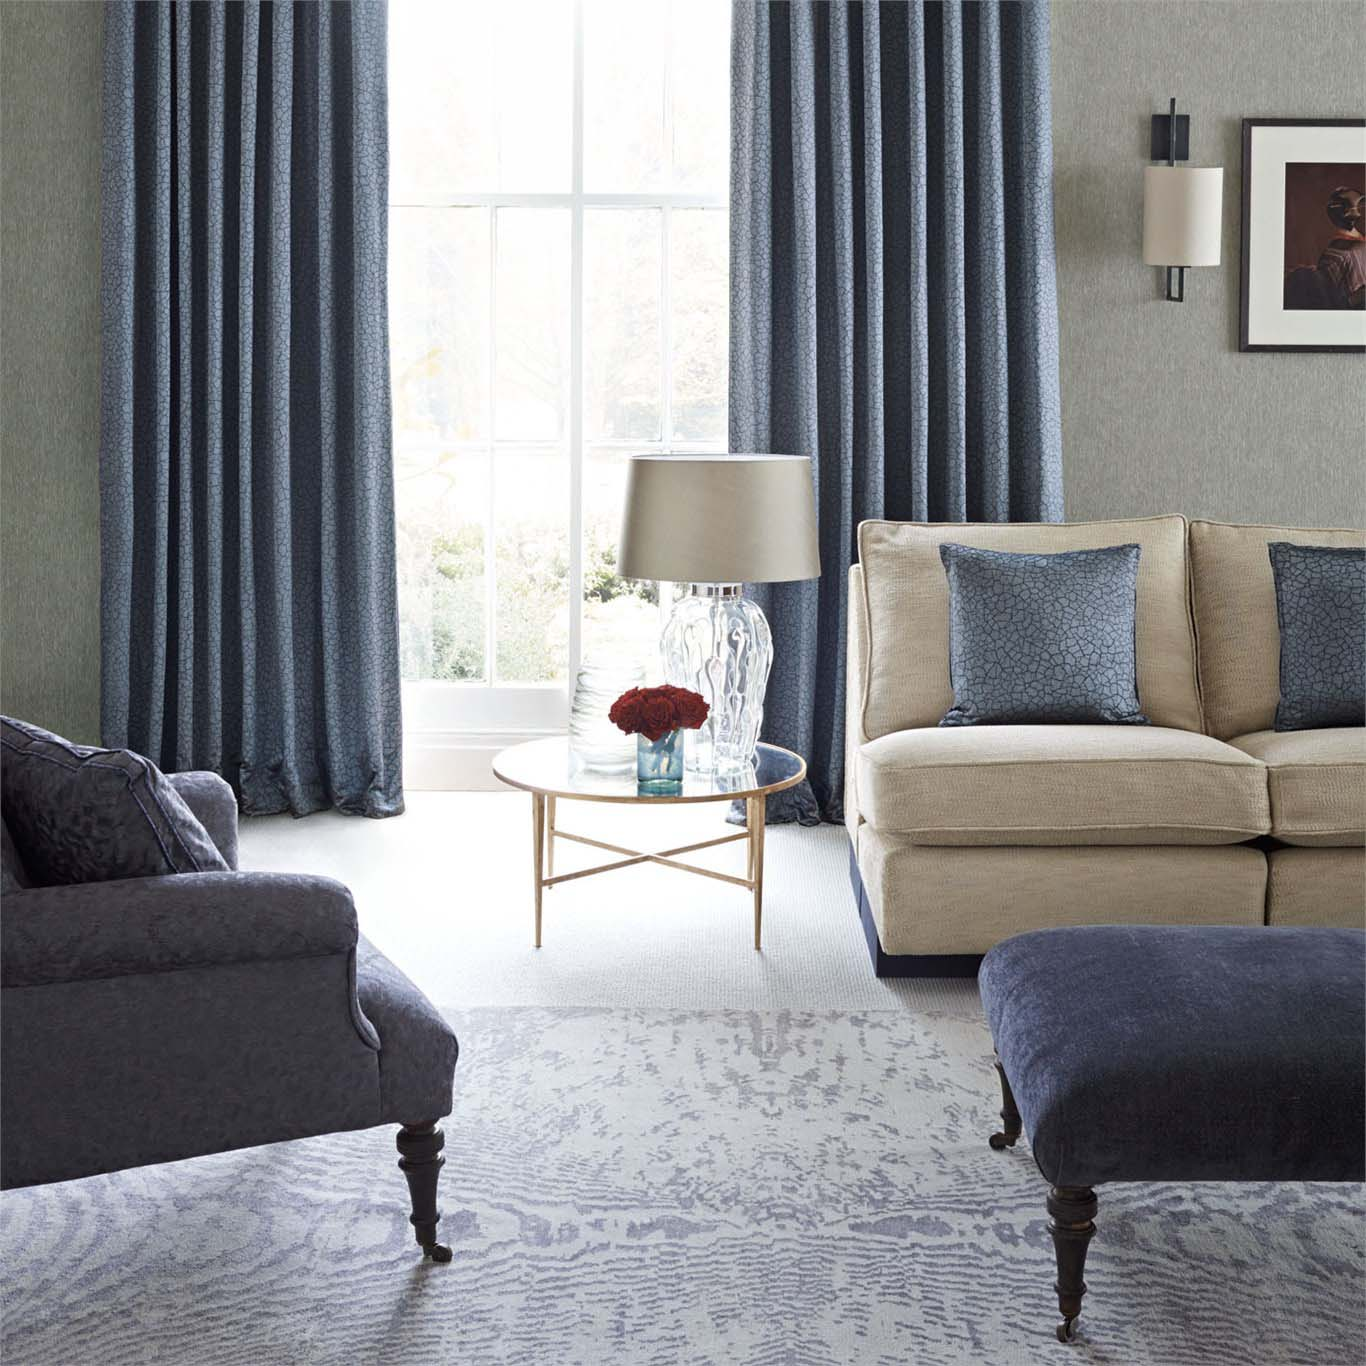 Furniture and curtains in lounge room